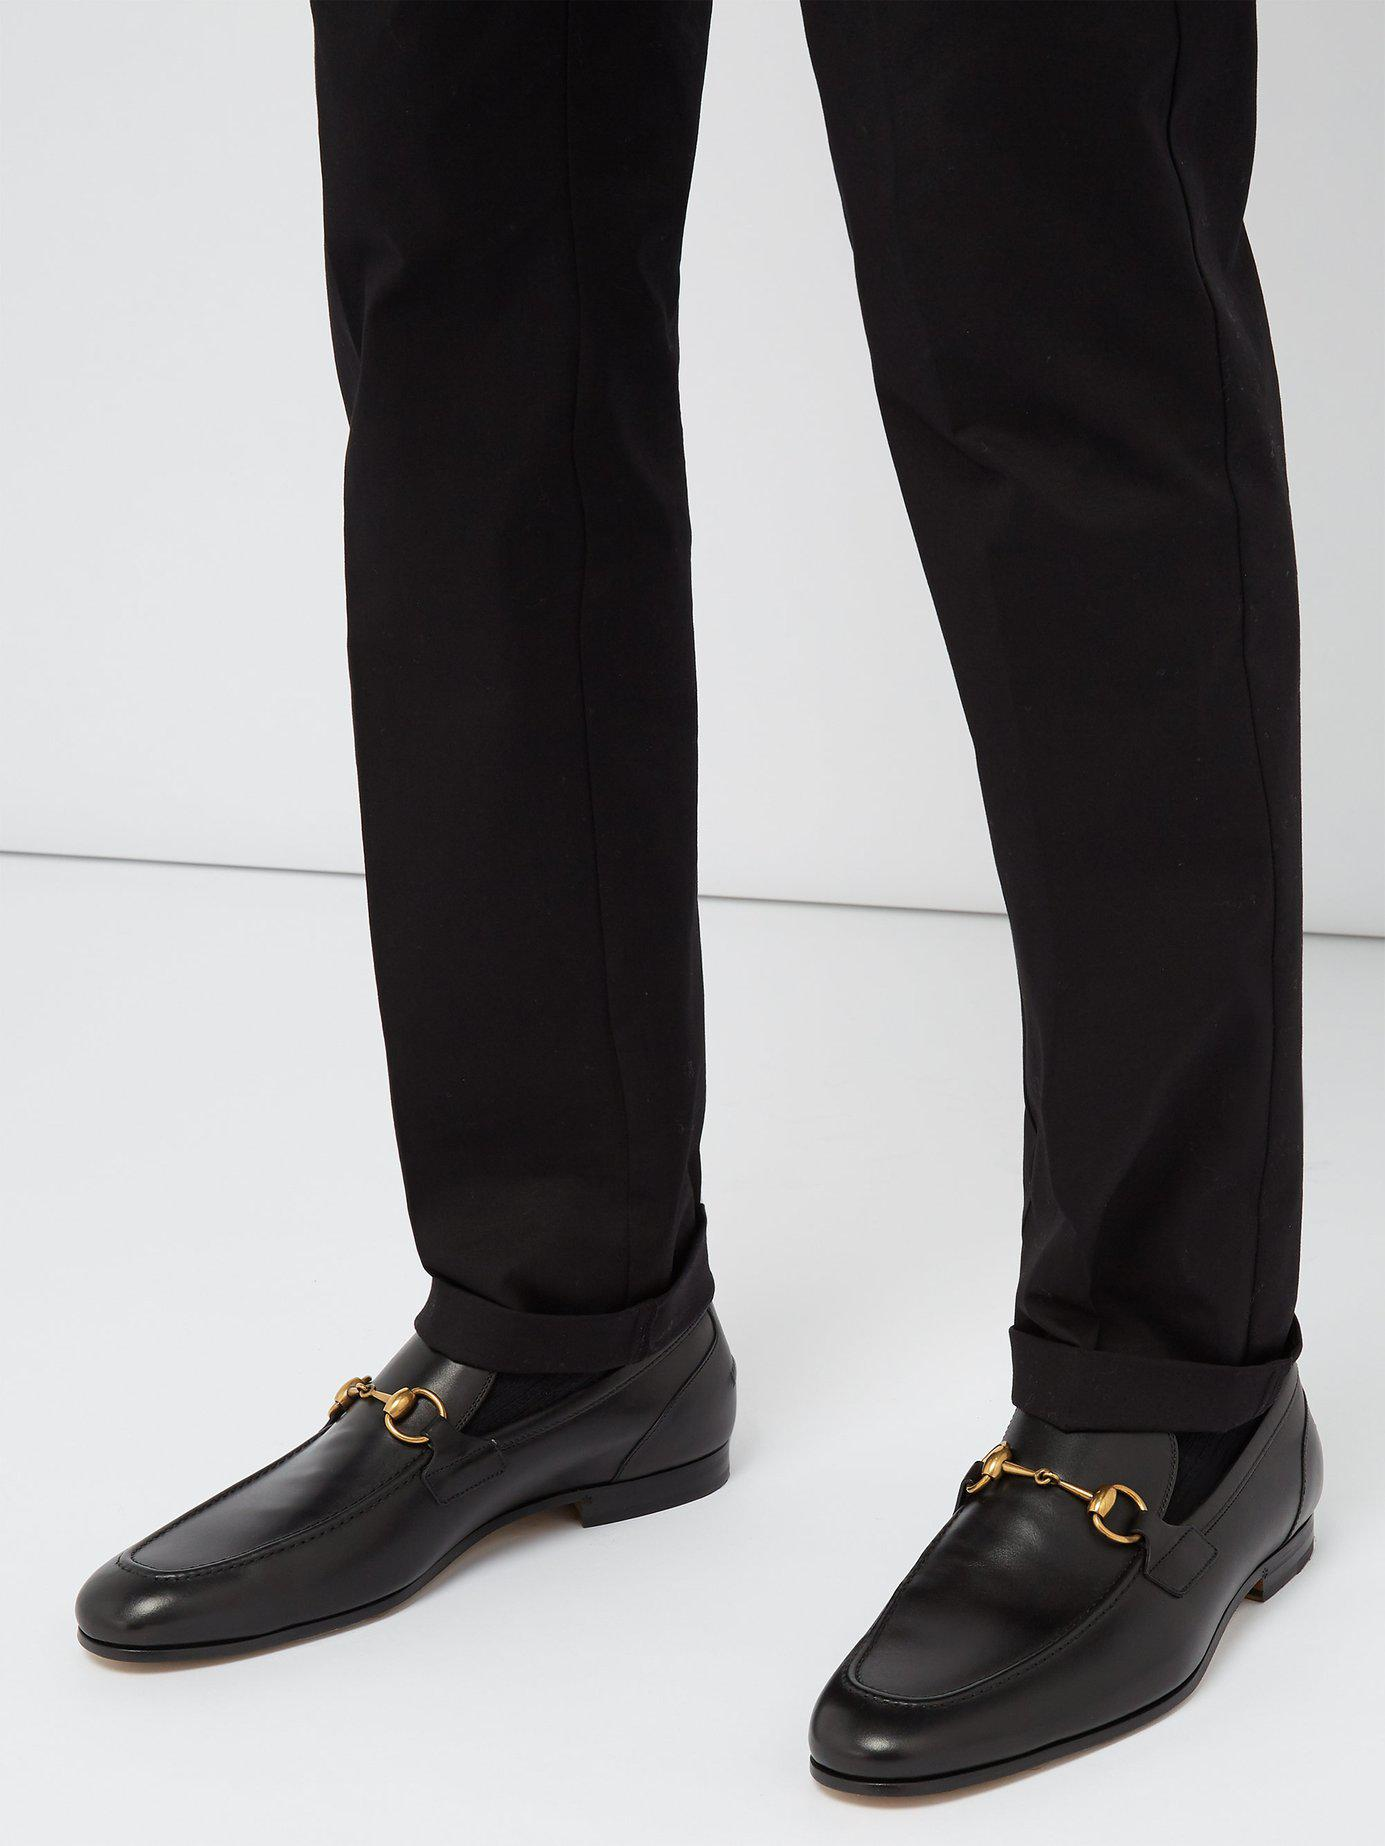 8d3e04f9949 Lyst - Gucci Jordaan Leather Loafers in Black for Men